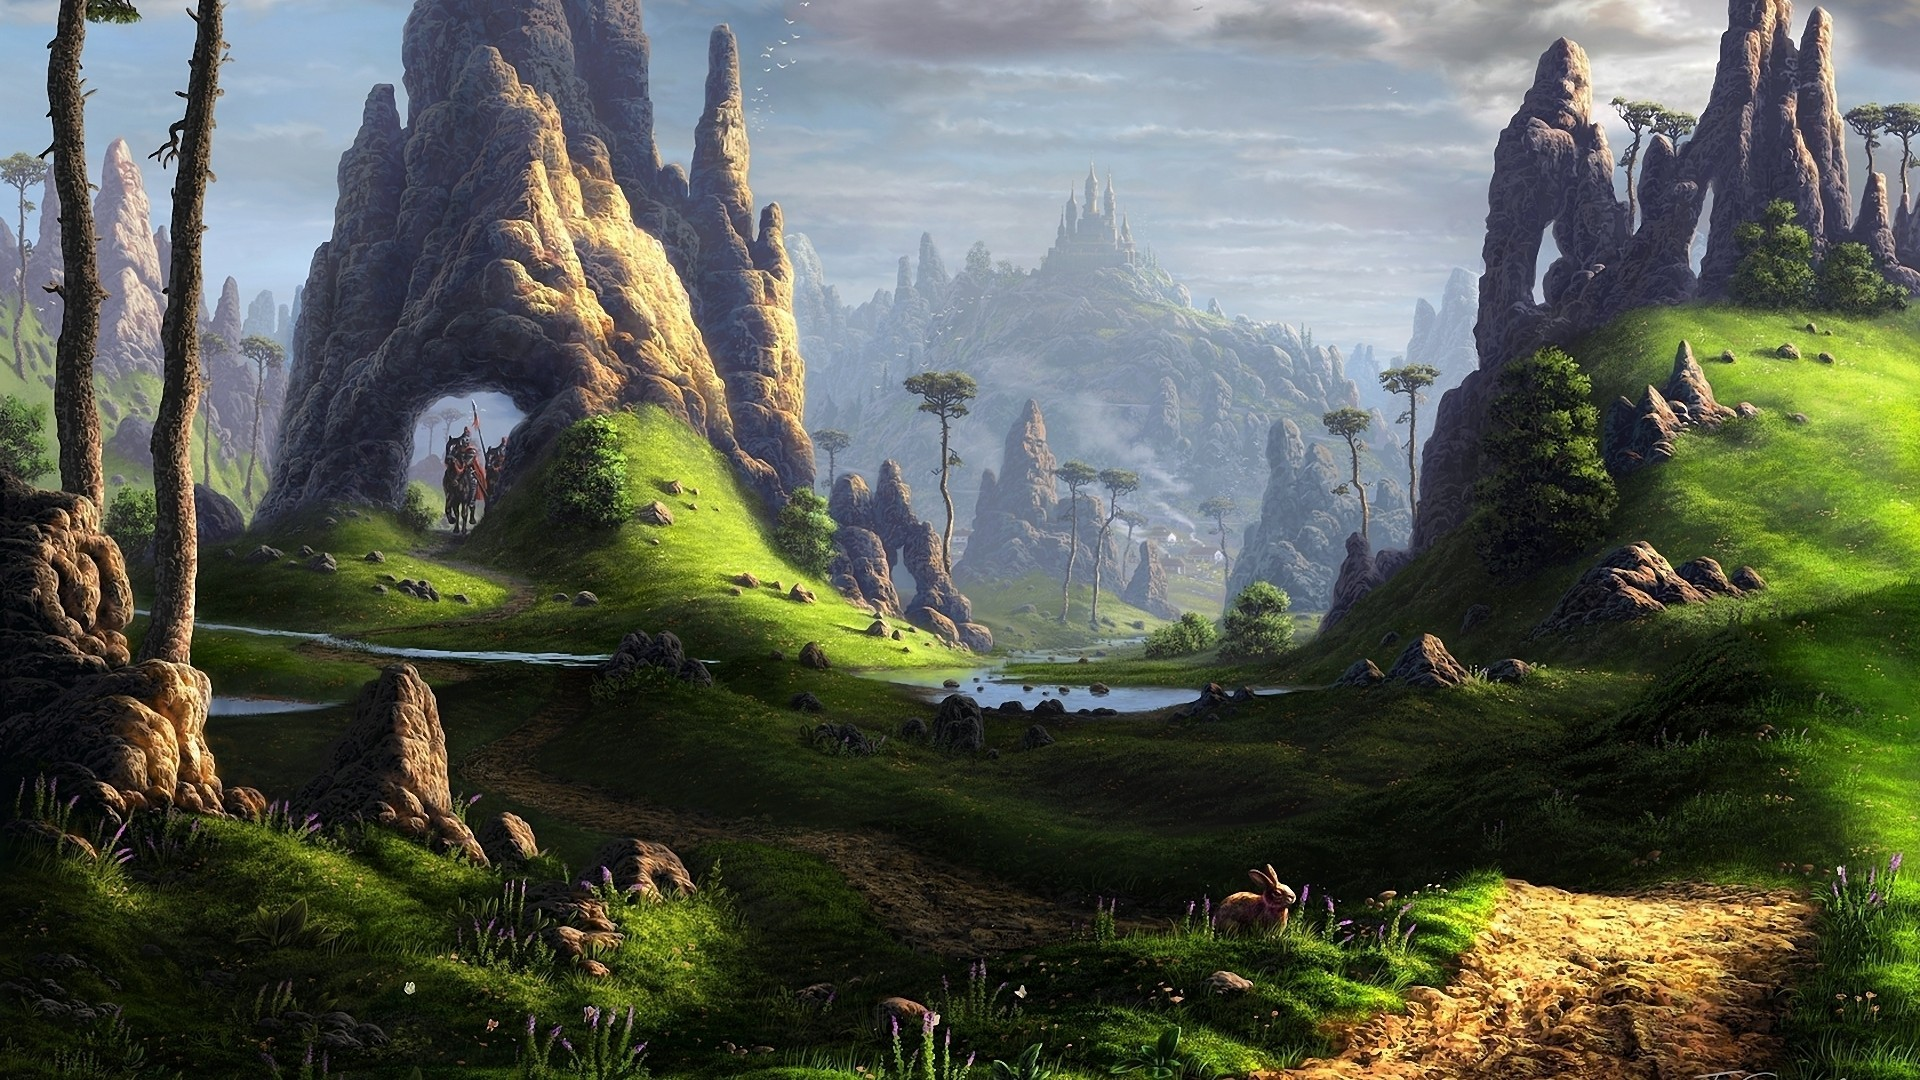 Landschaft Tal Fantasie Kunst Wallpaper Allwallpaperin 646 Pc De